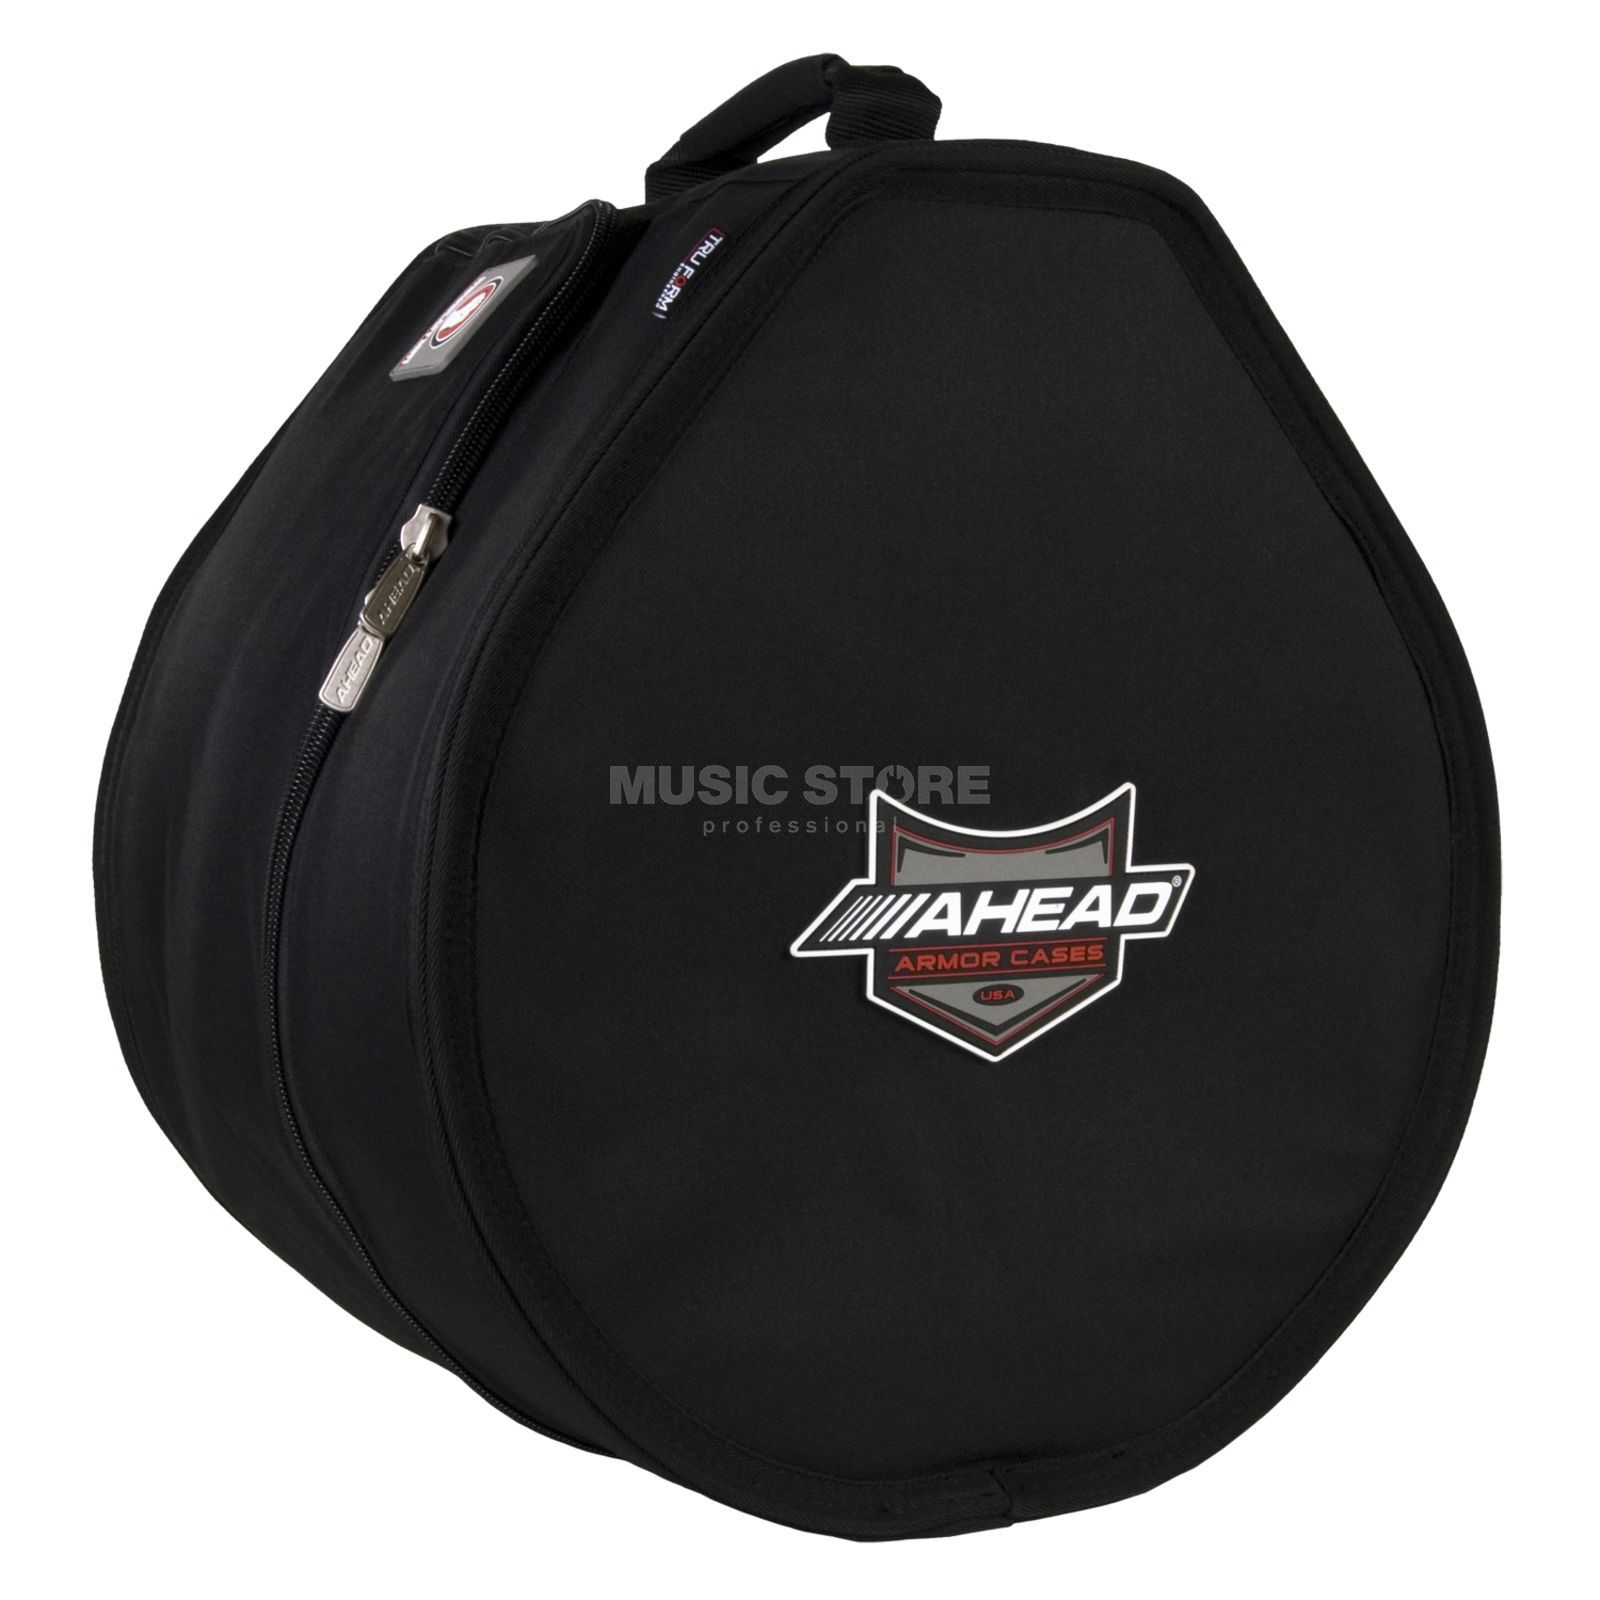 "Ahead Armor Cases Tom Bag 14""x10""  Produktbild"